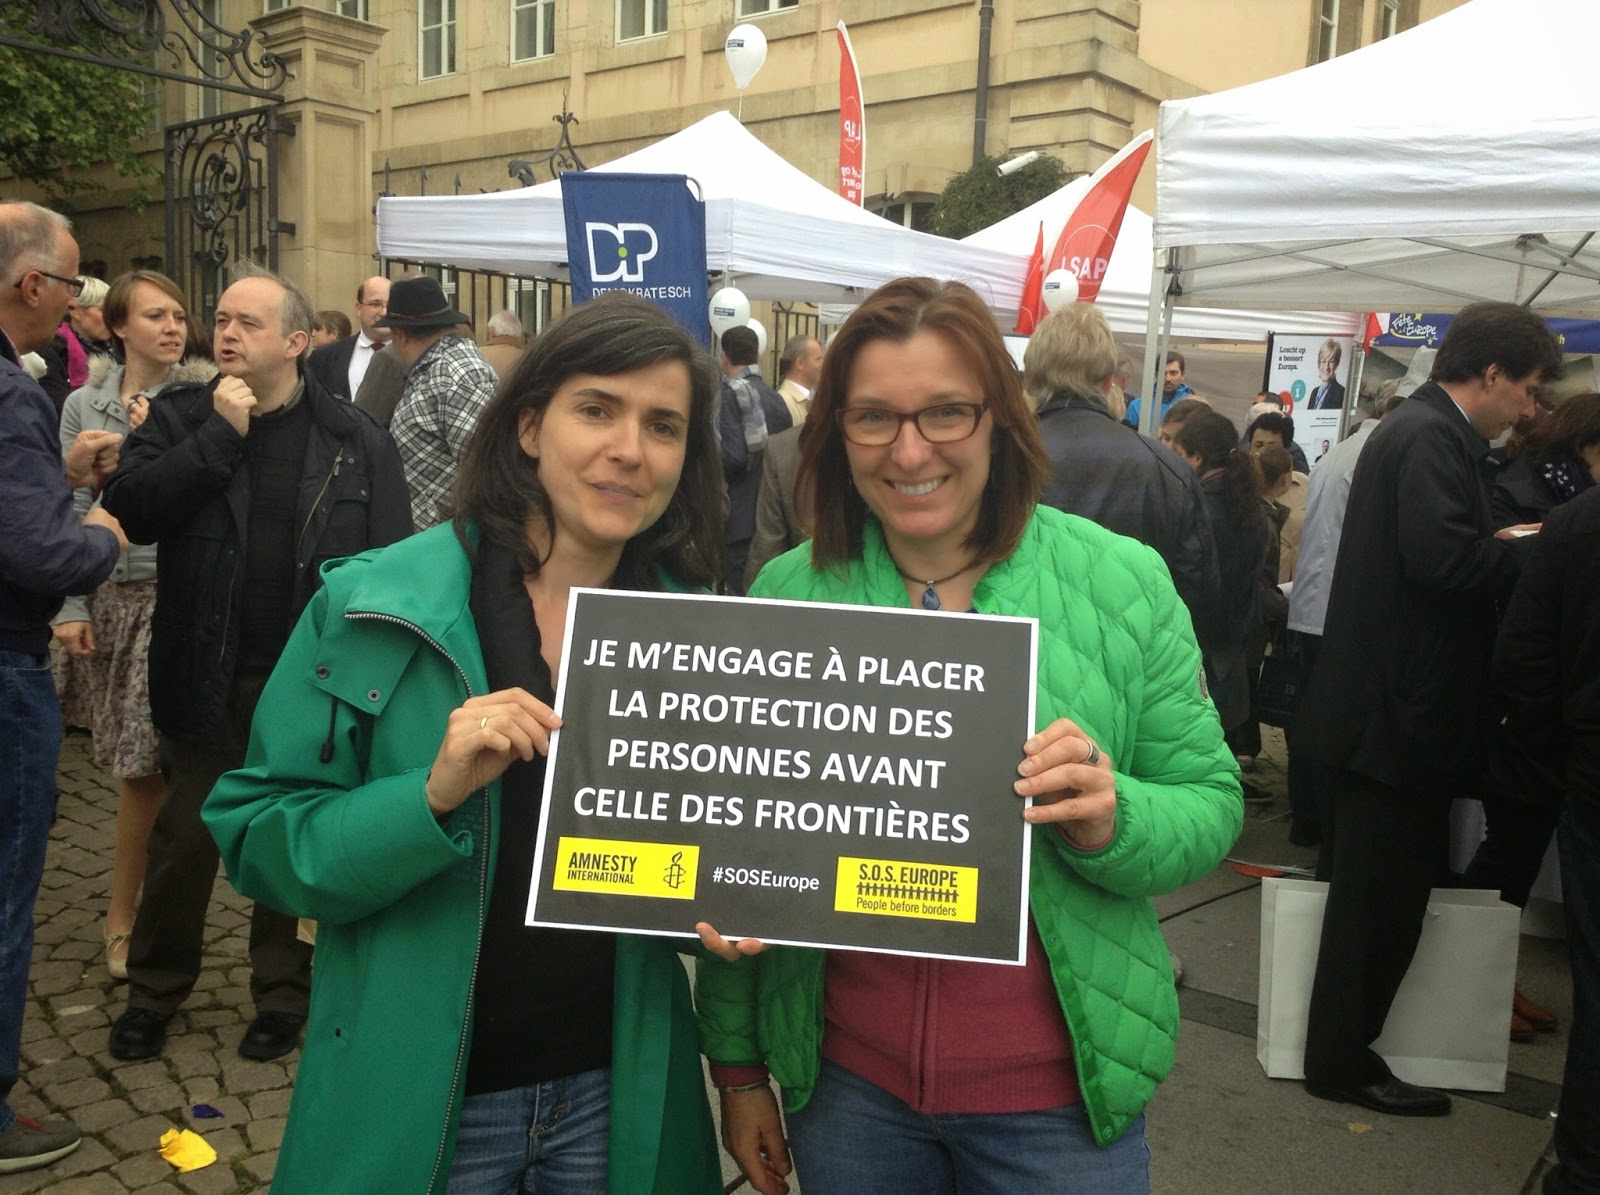 http://amnesty-luxembourg-photos.blogspot.com/2014/05/i-pledge-to-protect-people-before.html